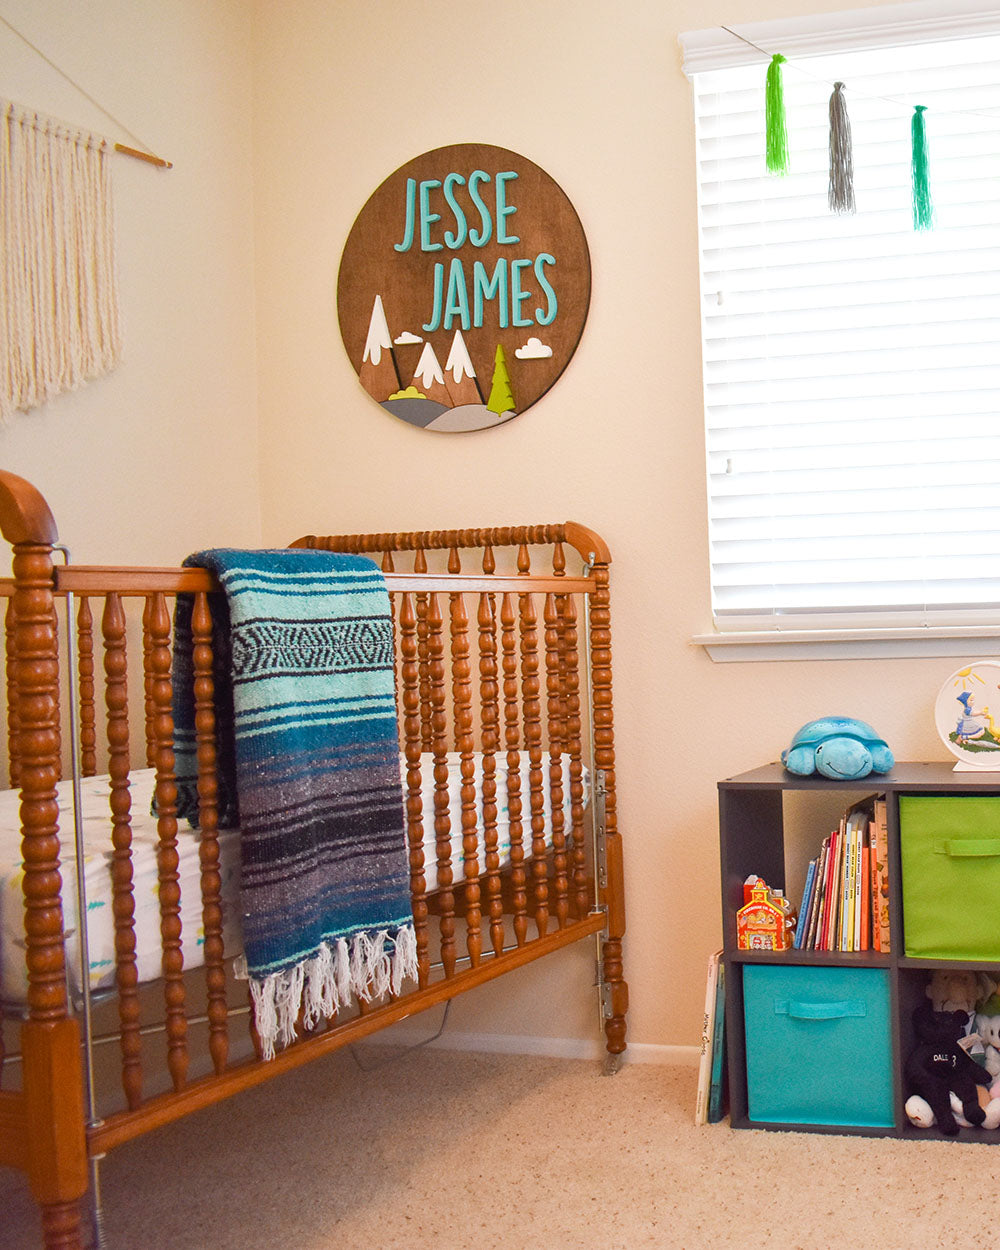 Baby JJ's adventure theme nursery wouldn't be complete with out a Bohemian Fiesta Blanket. It adds a cozy vibe to the room and comes in handy on chilly nights when I'm rocking the baby. Our little guy can take it with him on adventures as he grows older. So cute!